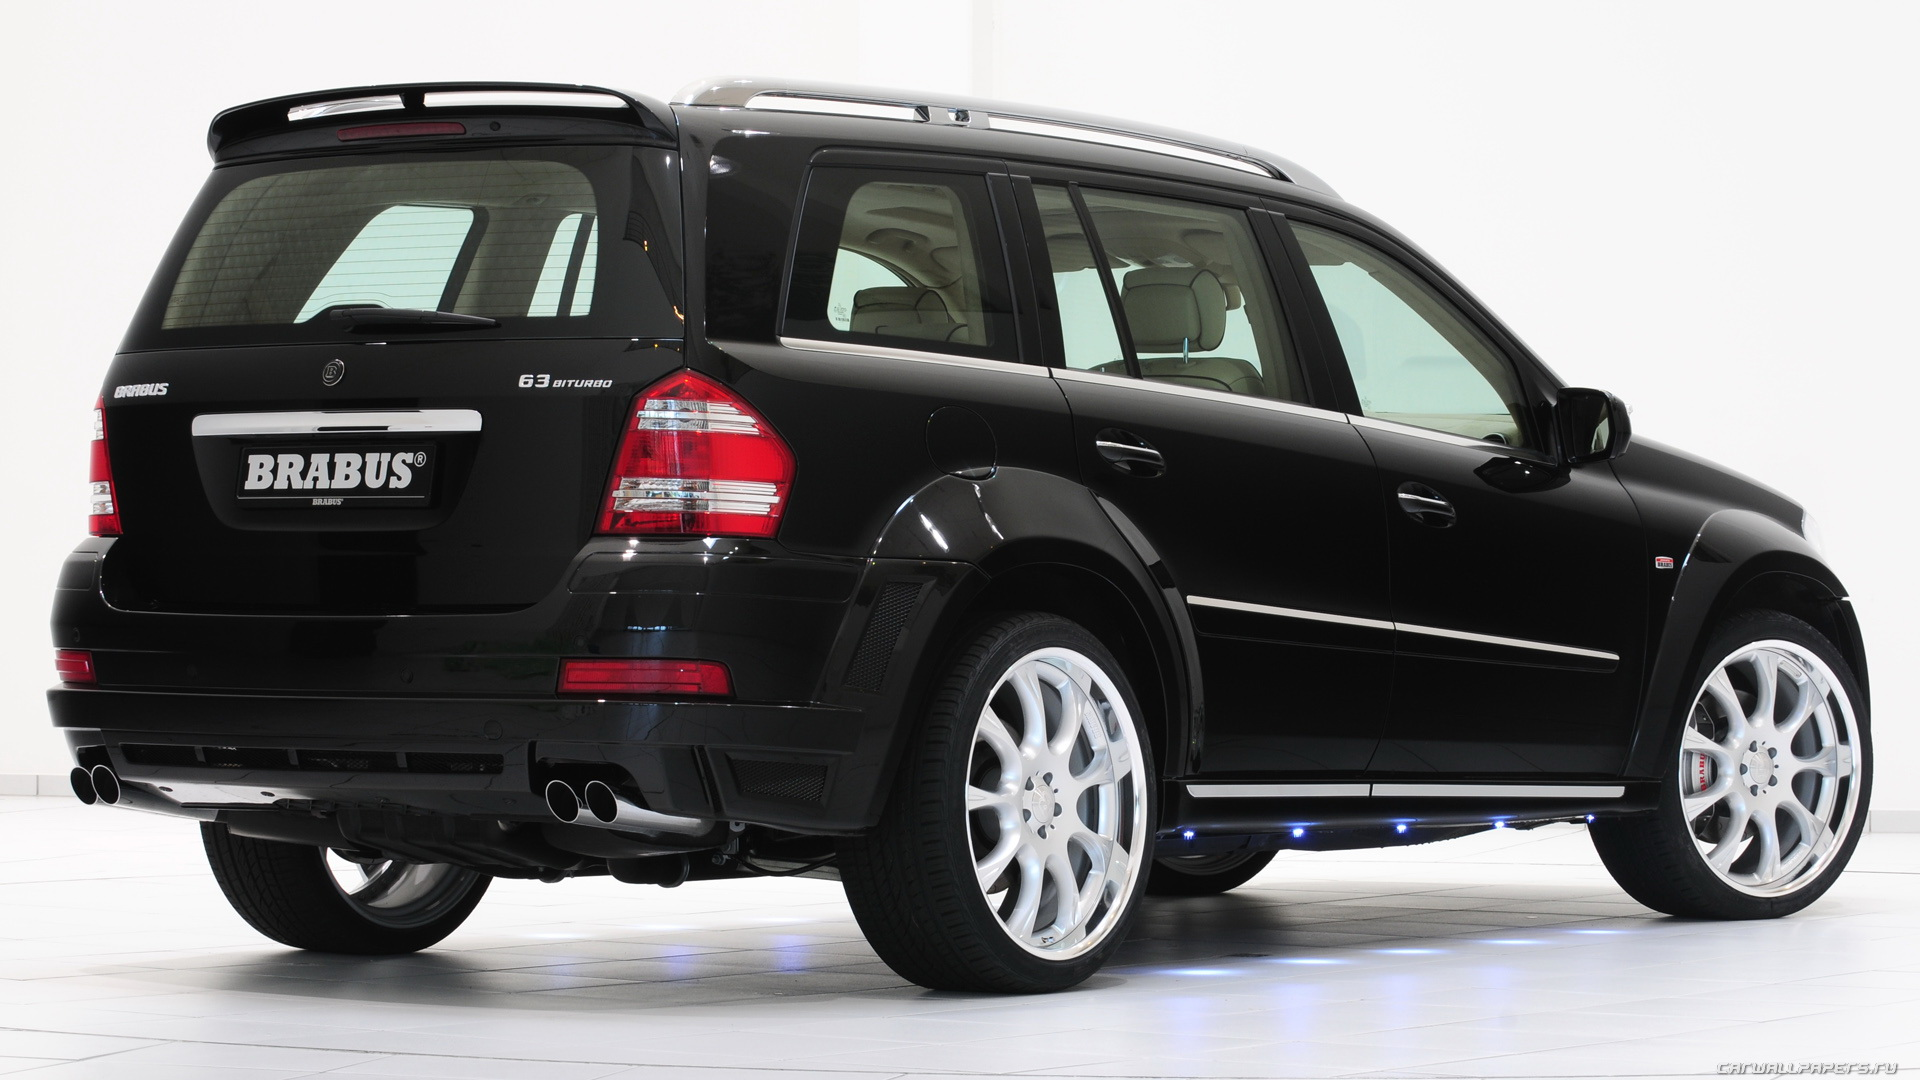 3dtuning of mercedes gl class suv 2010 for 2010 mercedes benz gl class suv